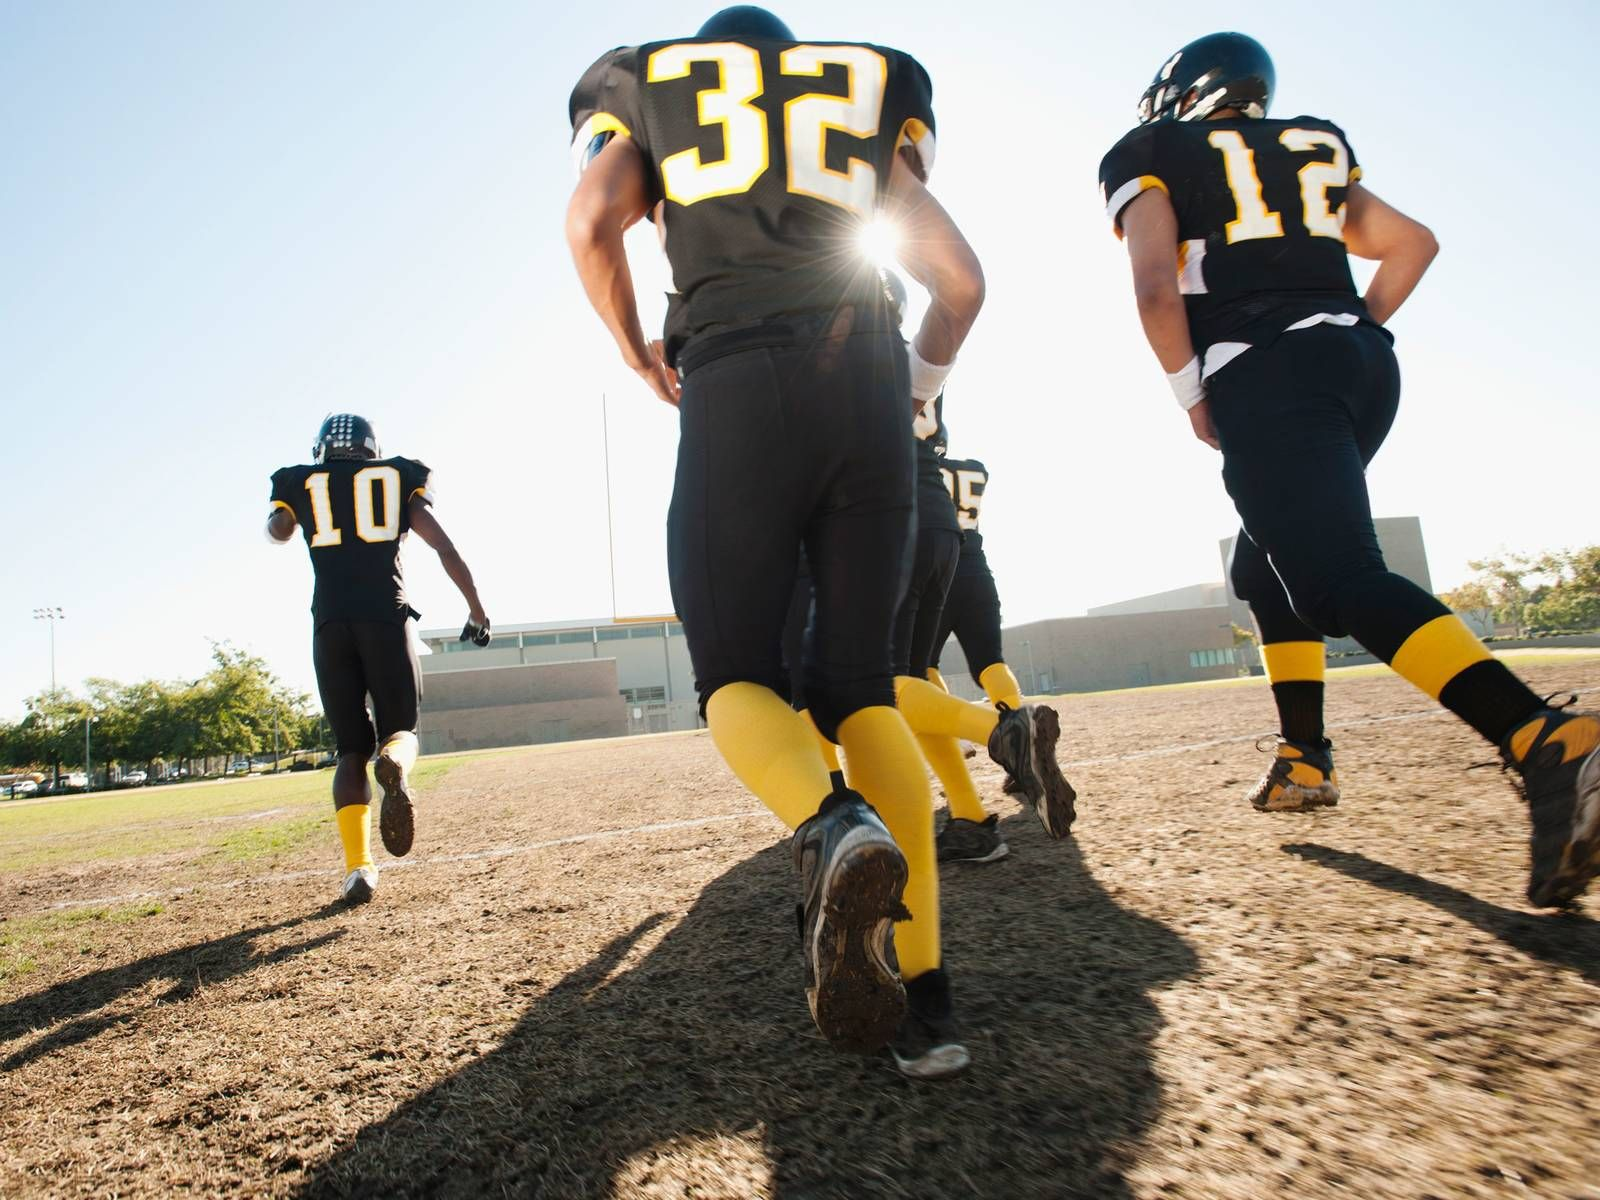 Want to succeed in business? Play high school sports